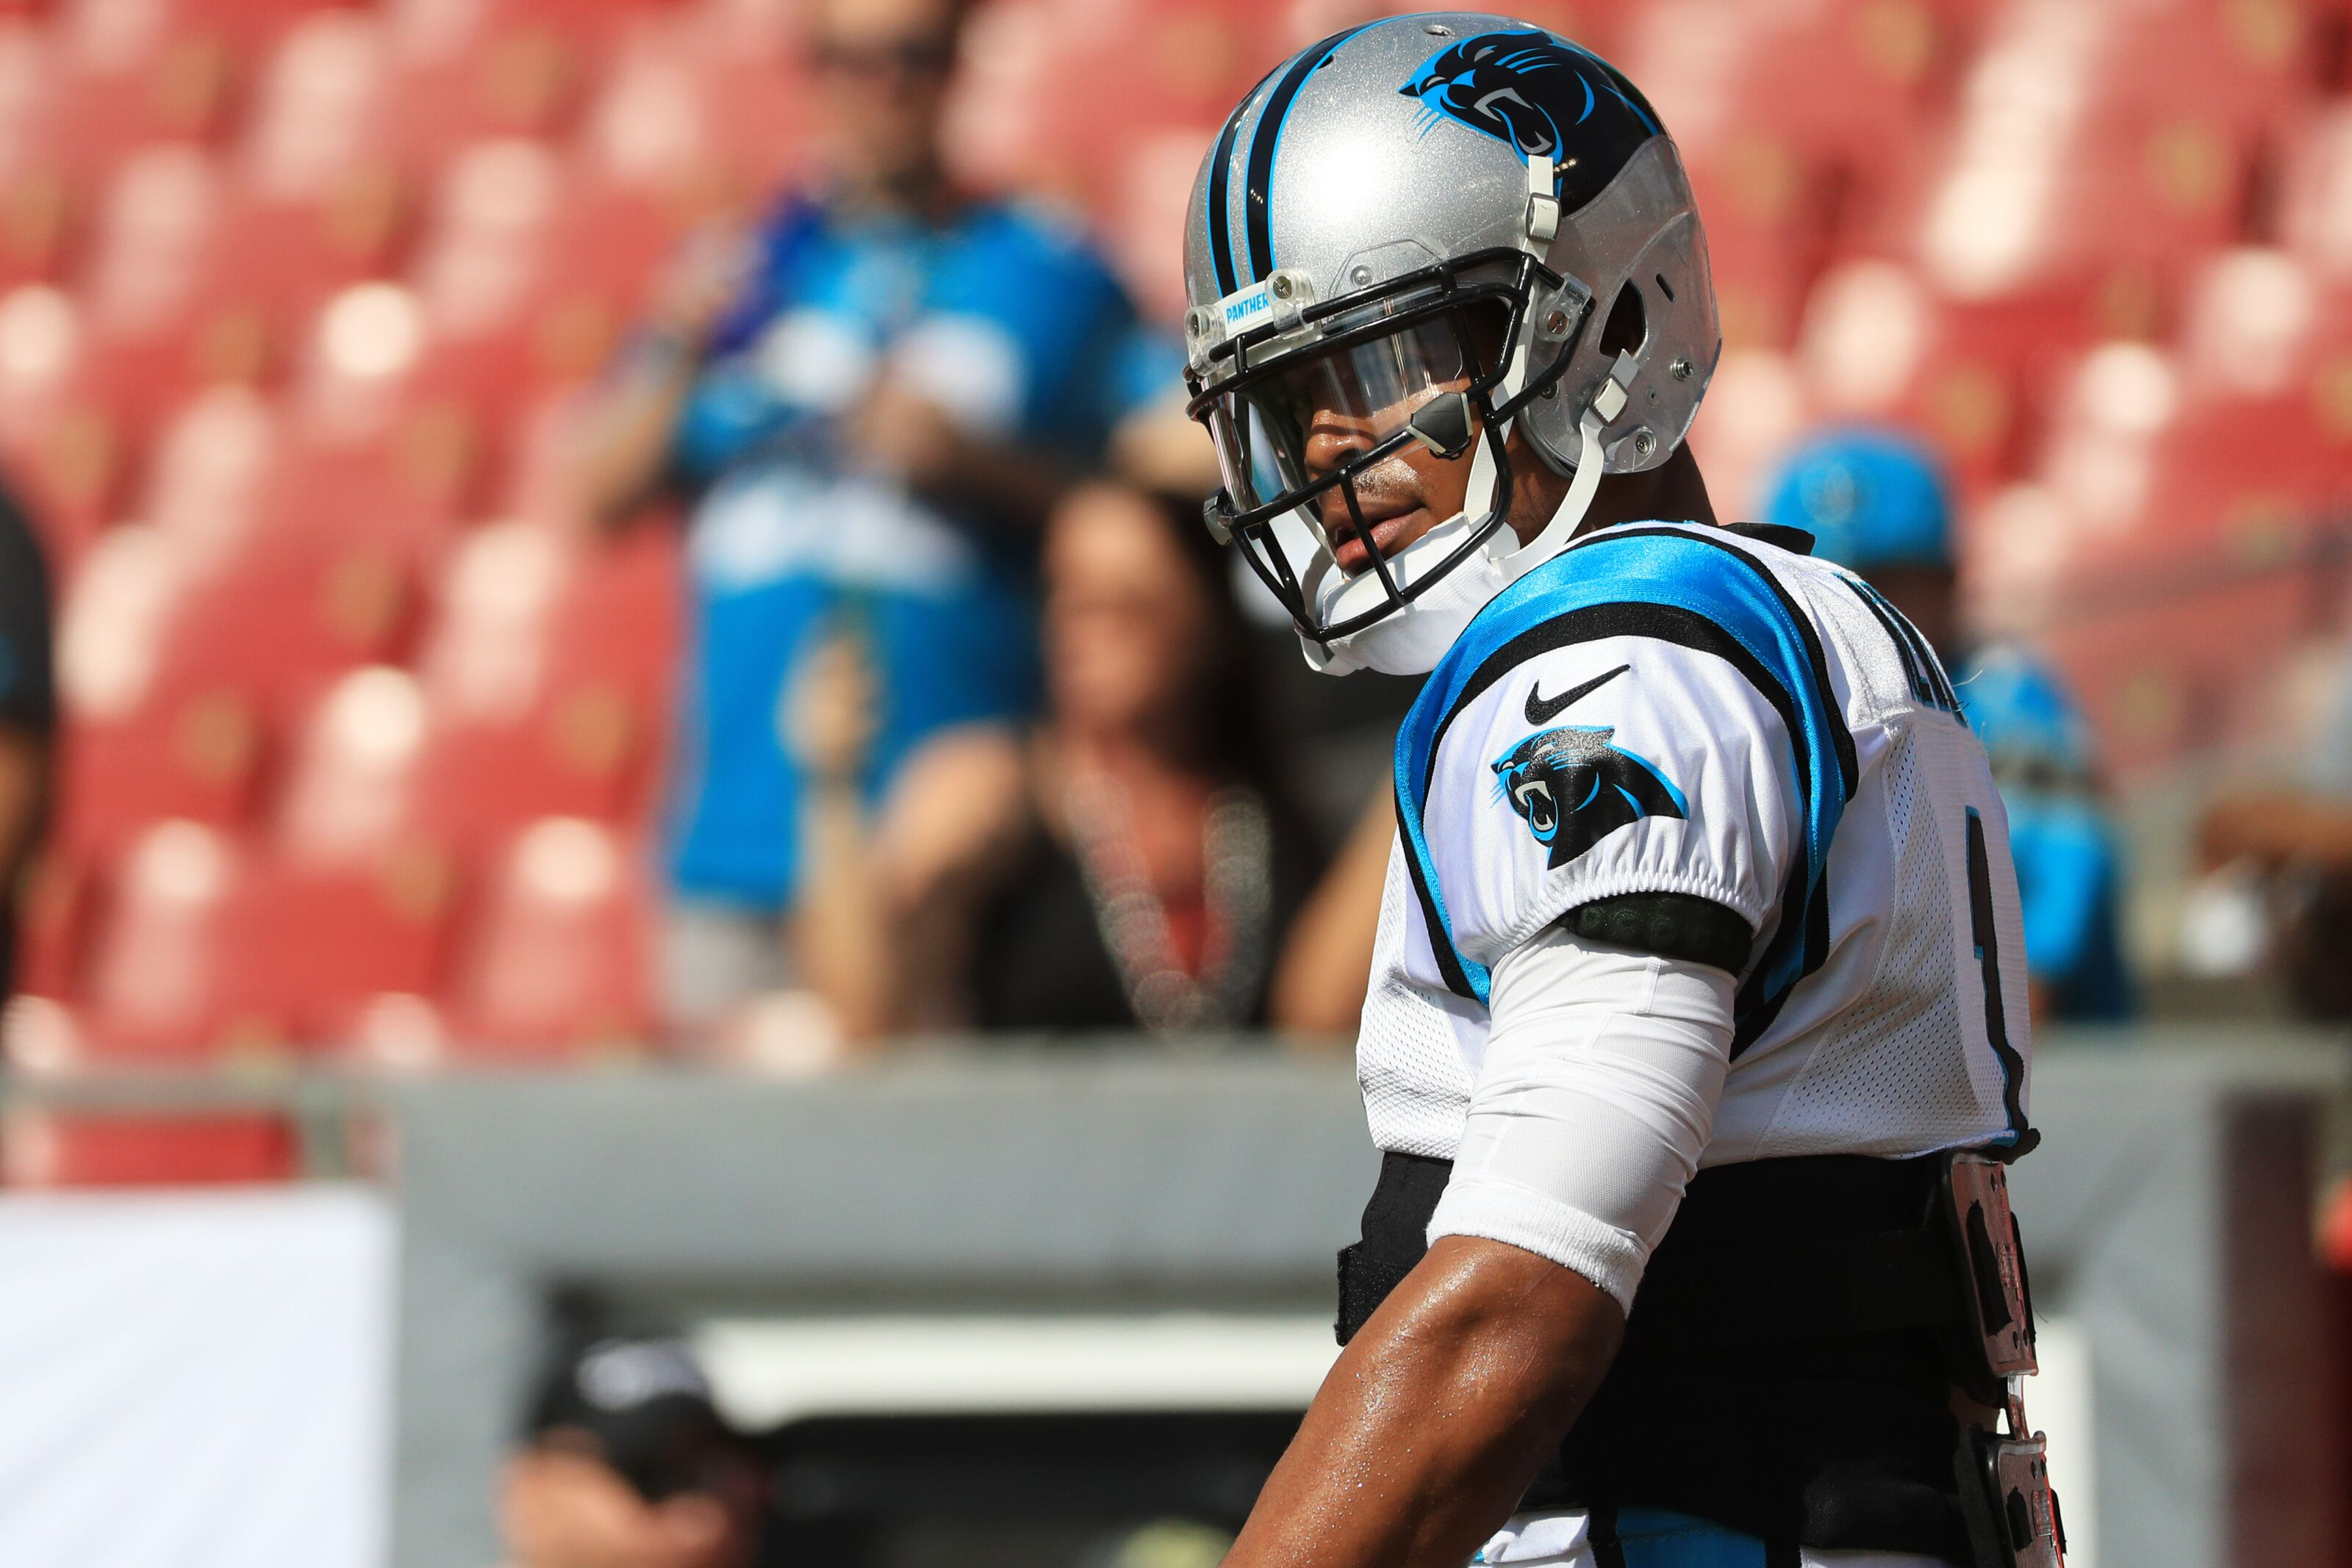 Will Cam Newton return to MVP form or succumb to injury?